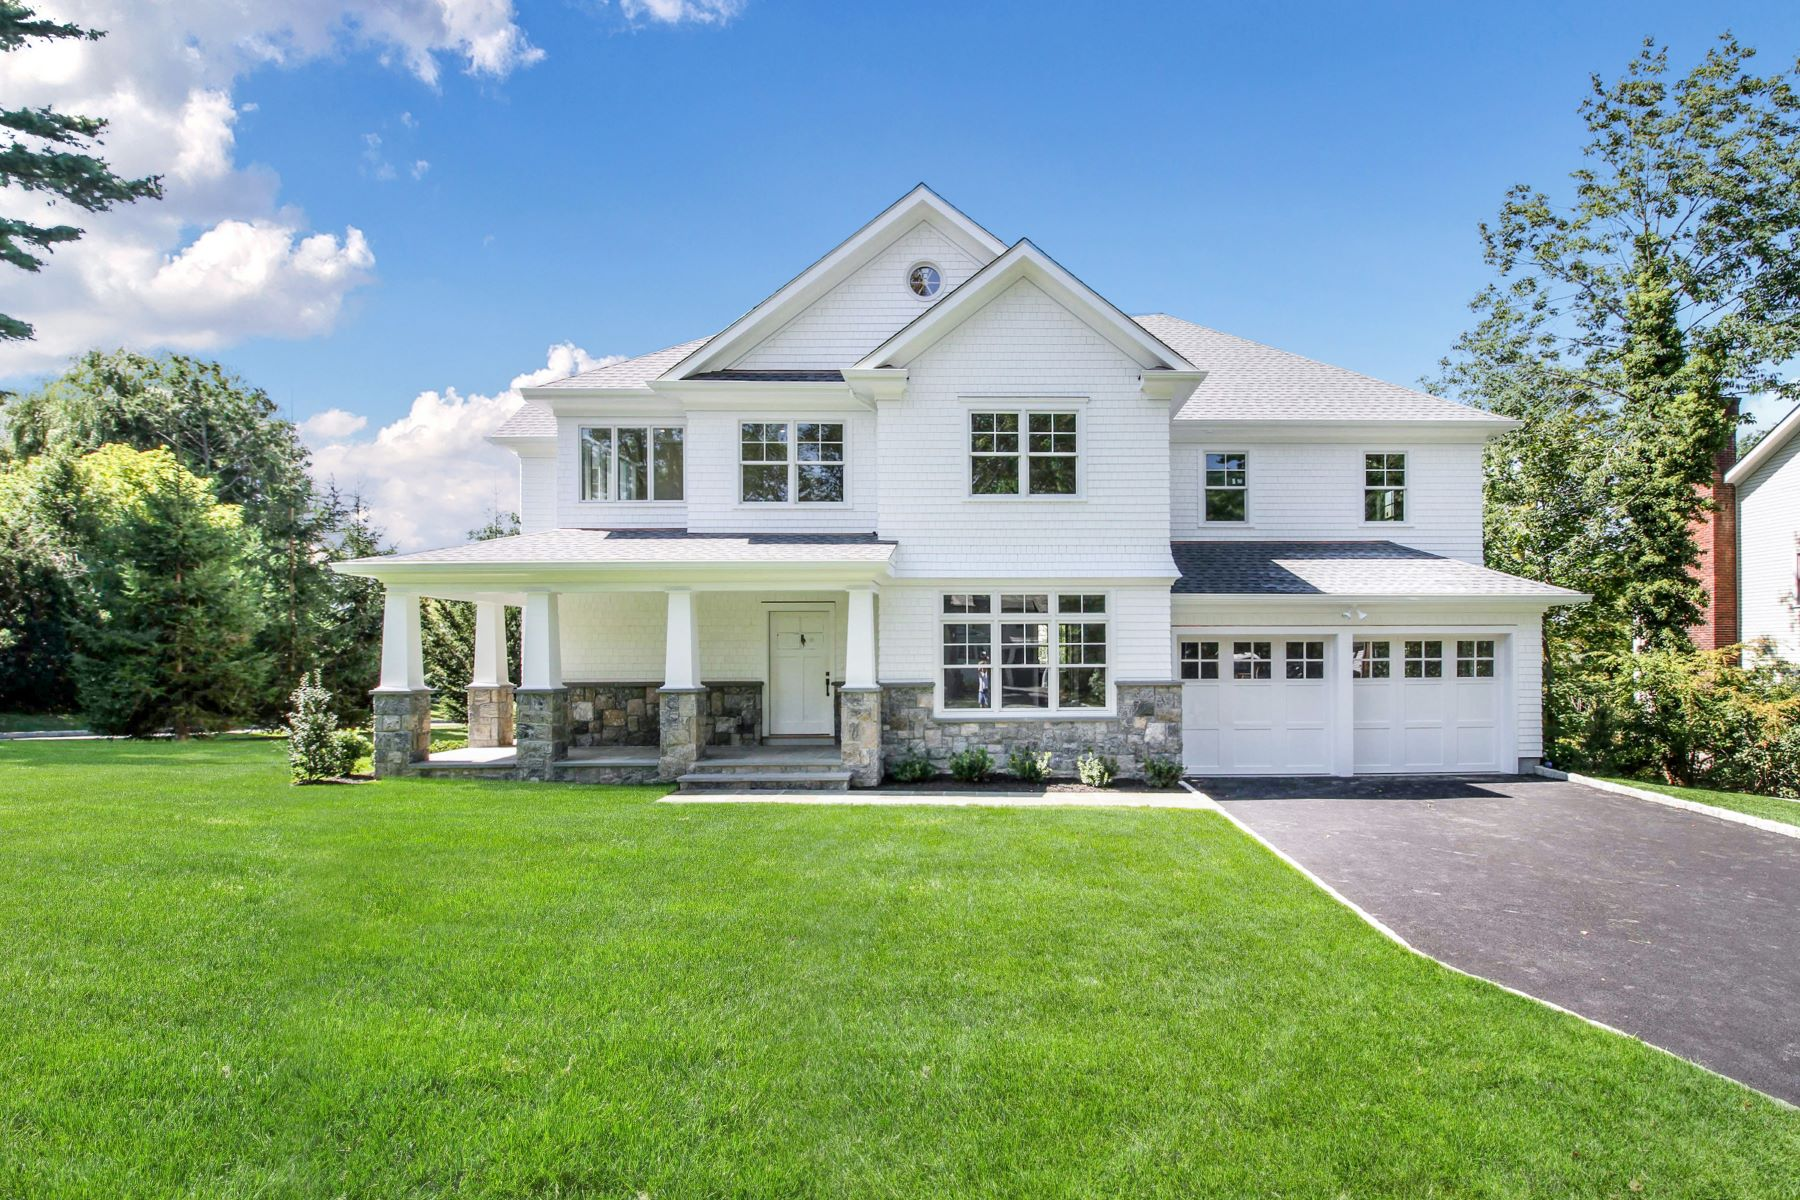 Single Family Homes für Verkauf beim Stunning New Construction in Exclusive Grange Estate Area of Scarsdale 26 Fairview Road, Scarsdale, New York 10583 Vereinigte Staaten